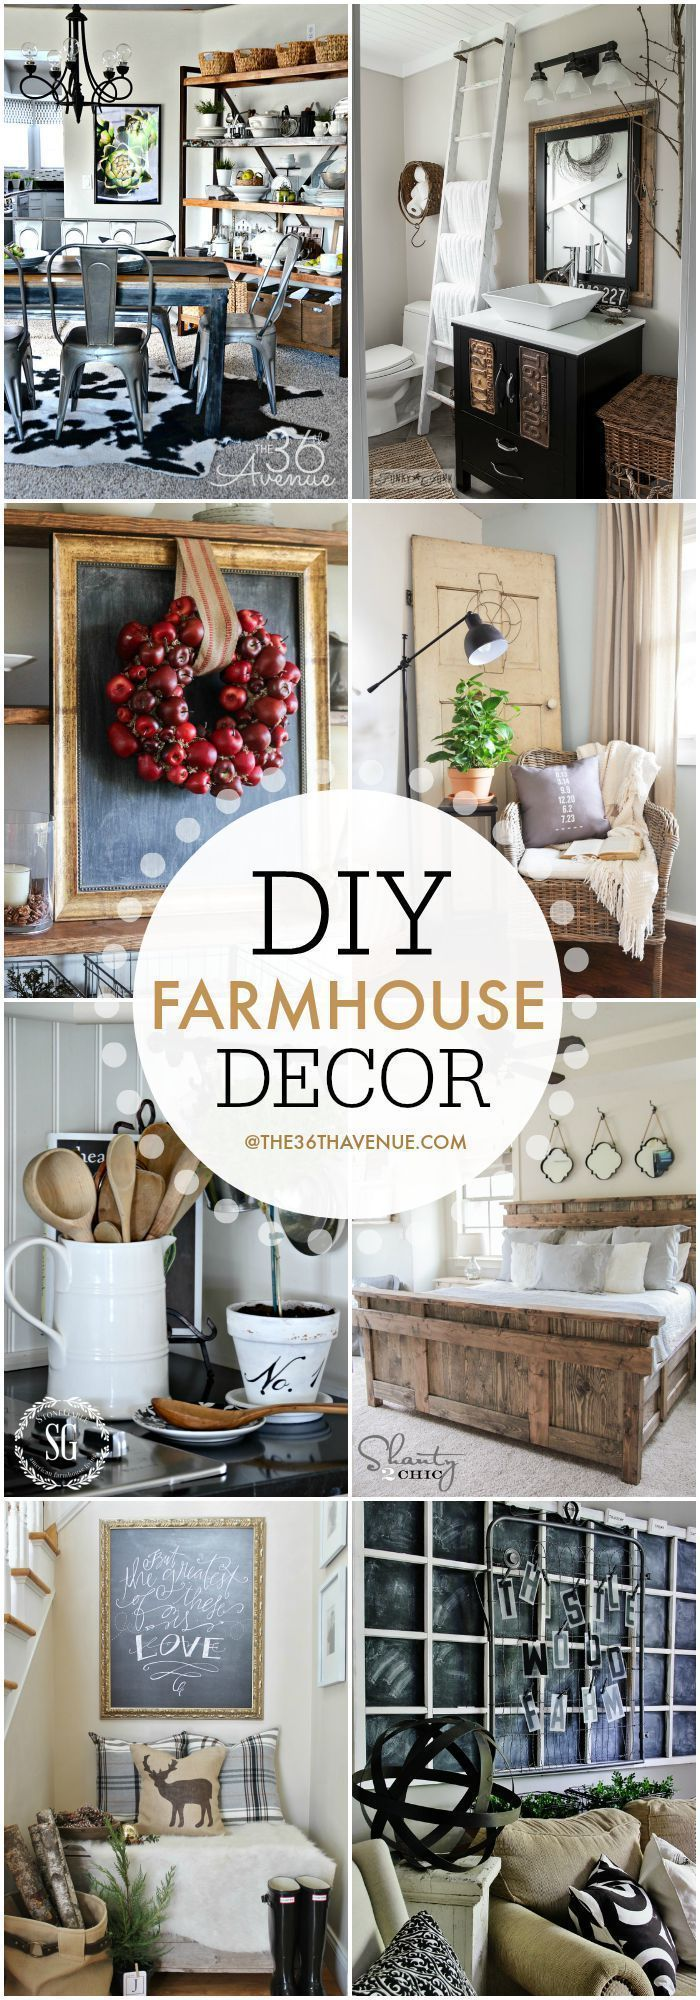 Home decor diy farmhouse decor ideas super cute ways for Cute home accessories